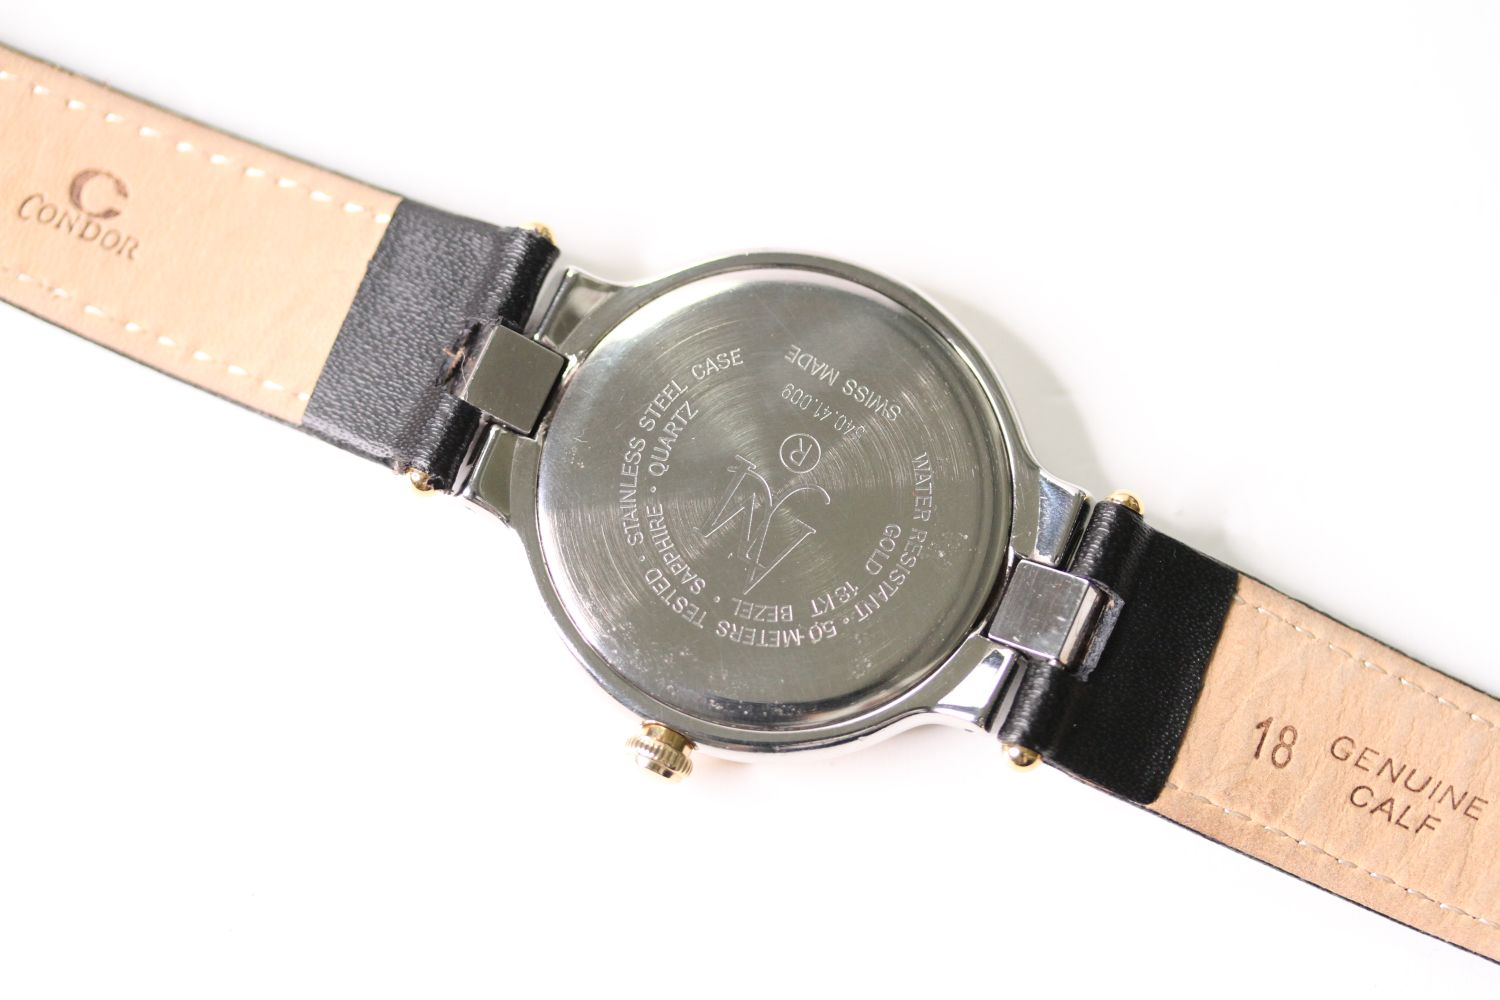 ANDRE LE MARQUAND HUNTER WRIST WATCH, circular black dial with gold arabic numeral hour markers, - Image 2 of 2